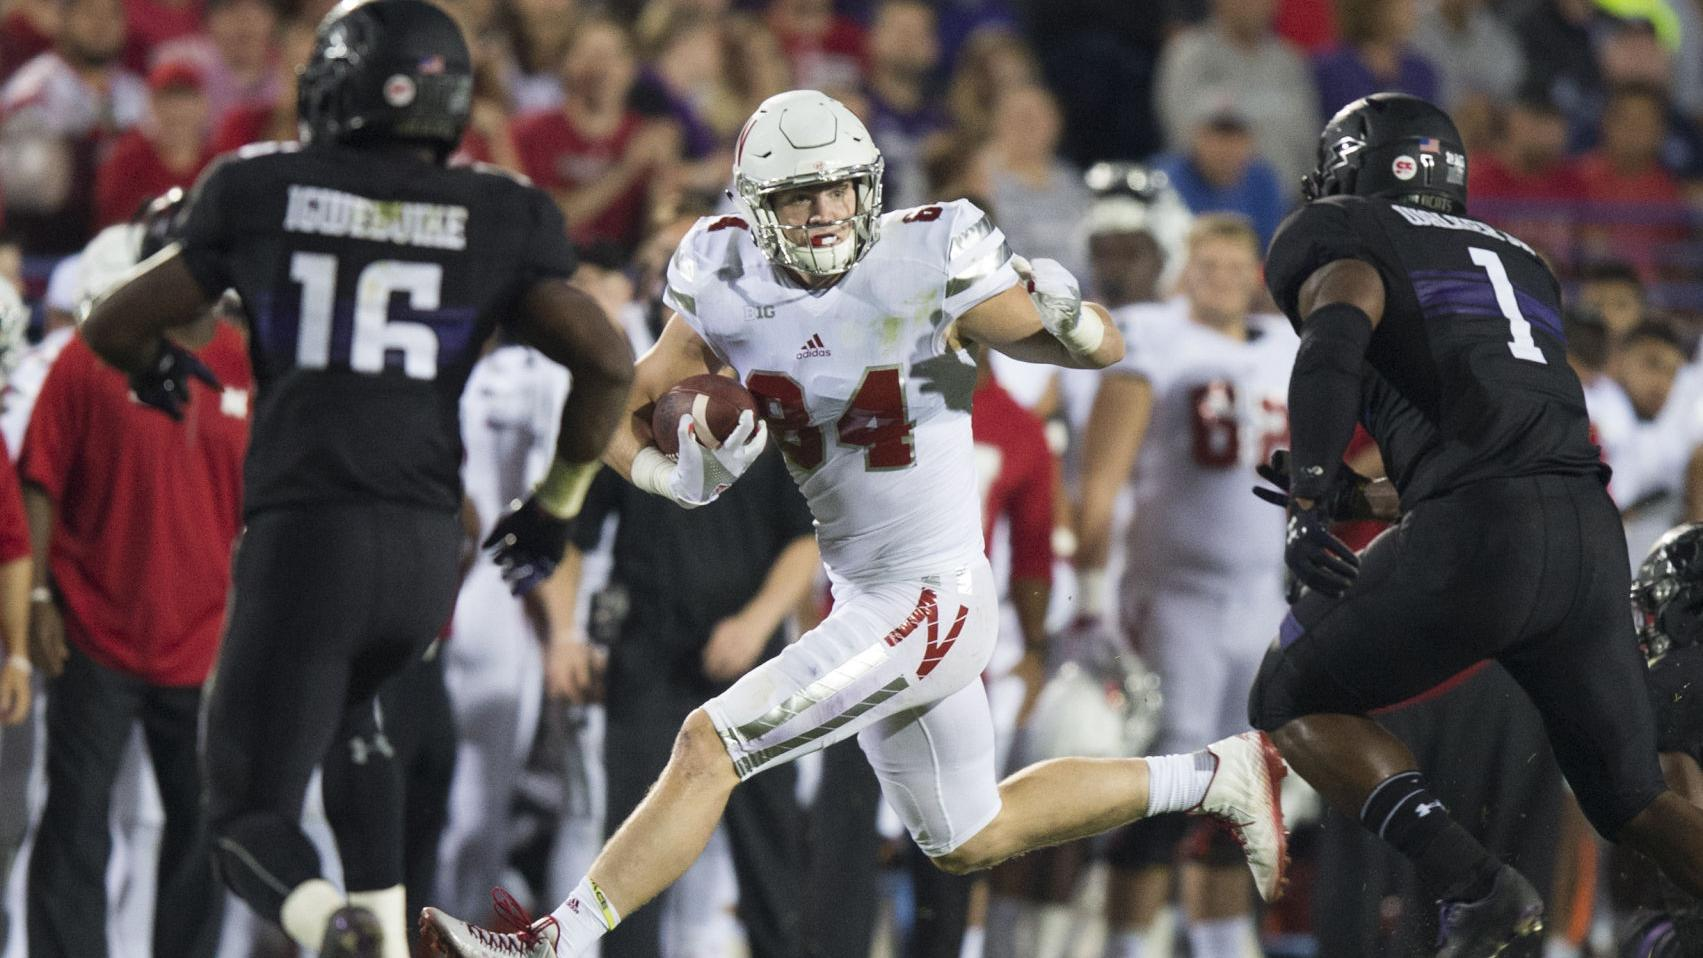 Bye Week Beneficial As Huskers Look To Fill Gaps Of